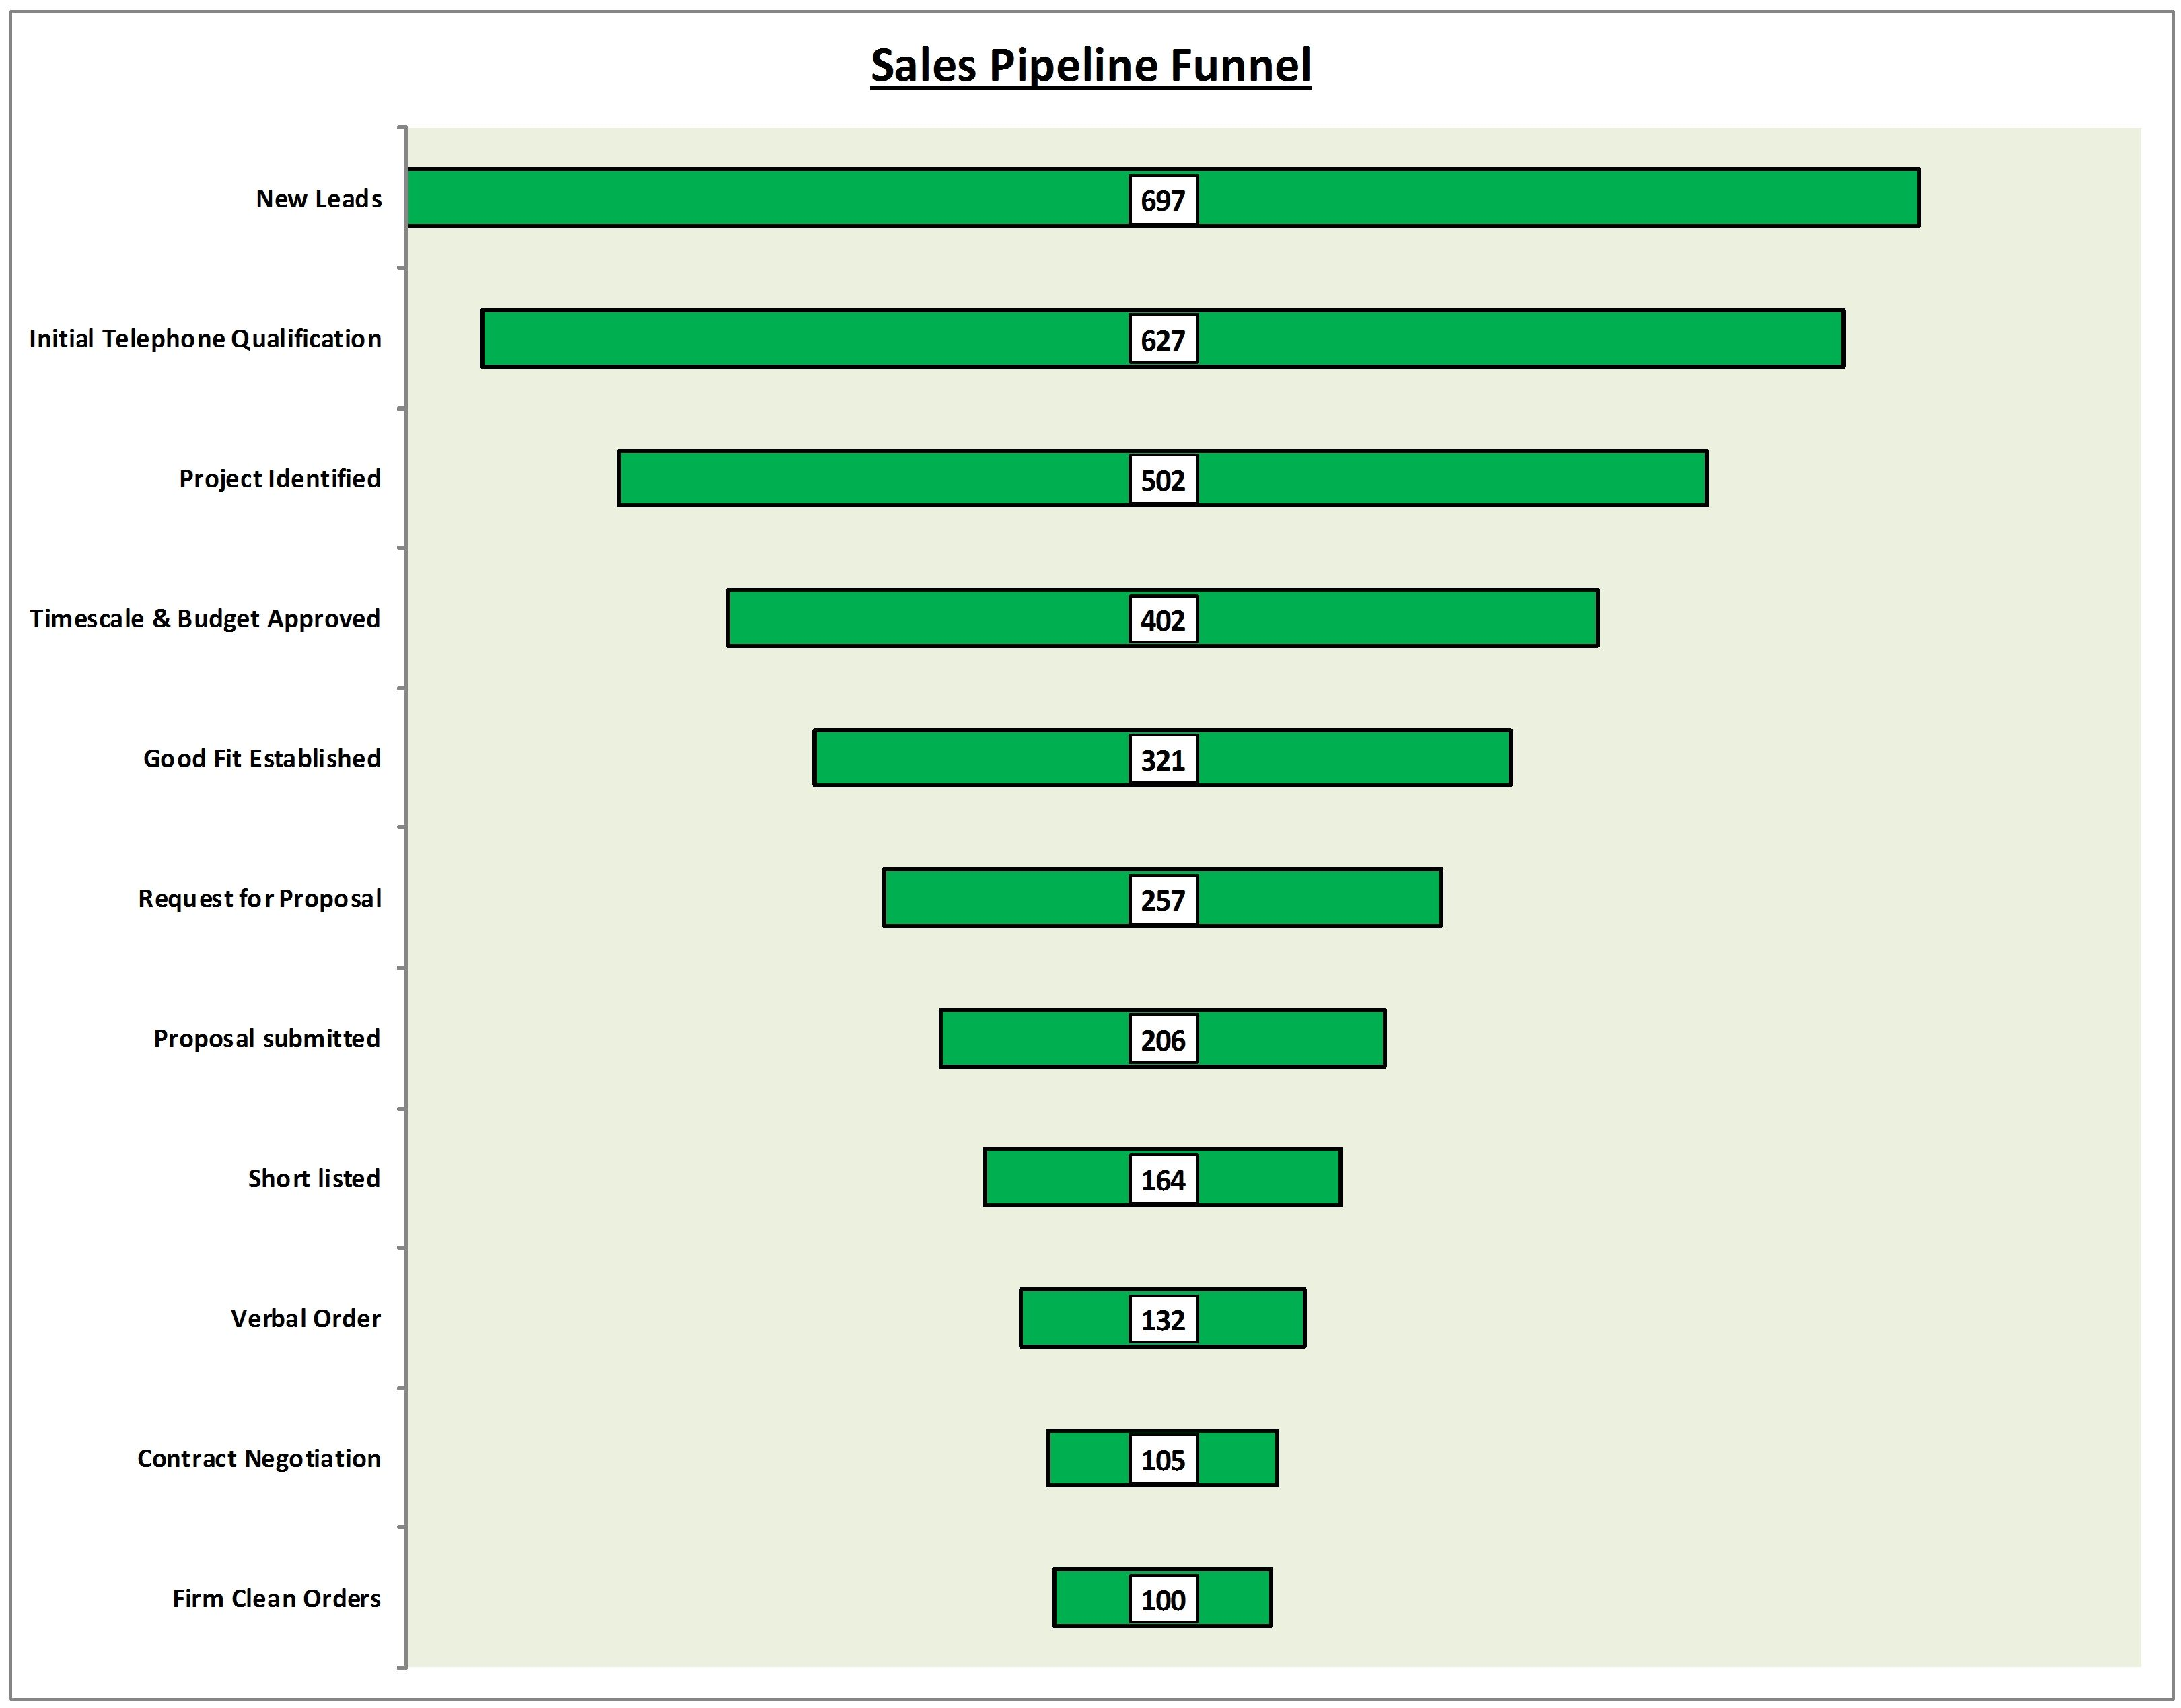 sales pipeline funnel graphic excel template now in business tools